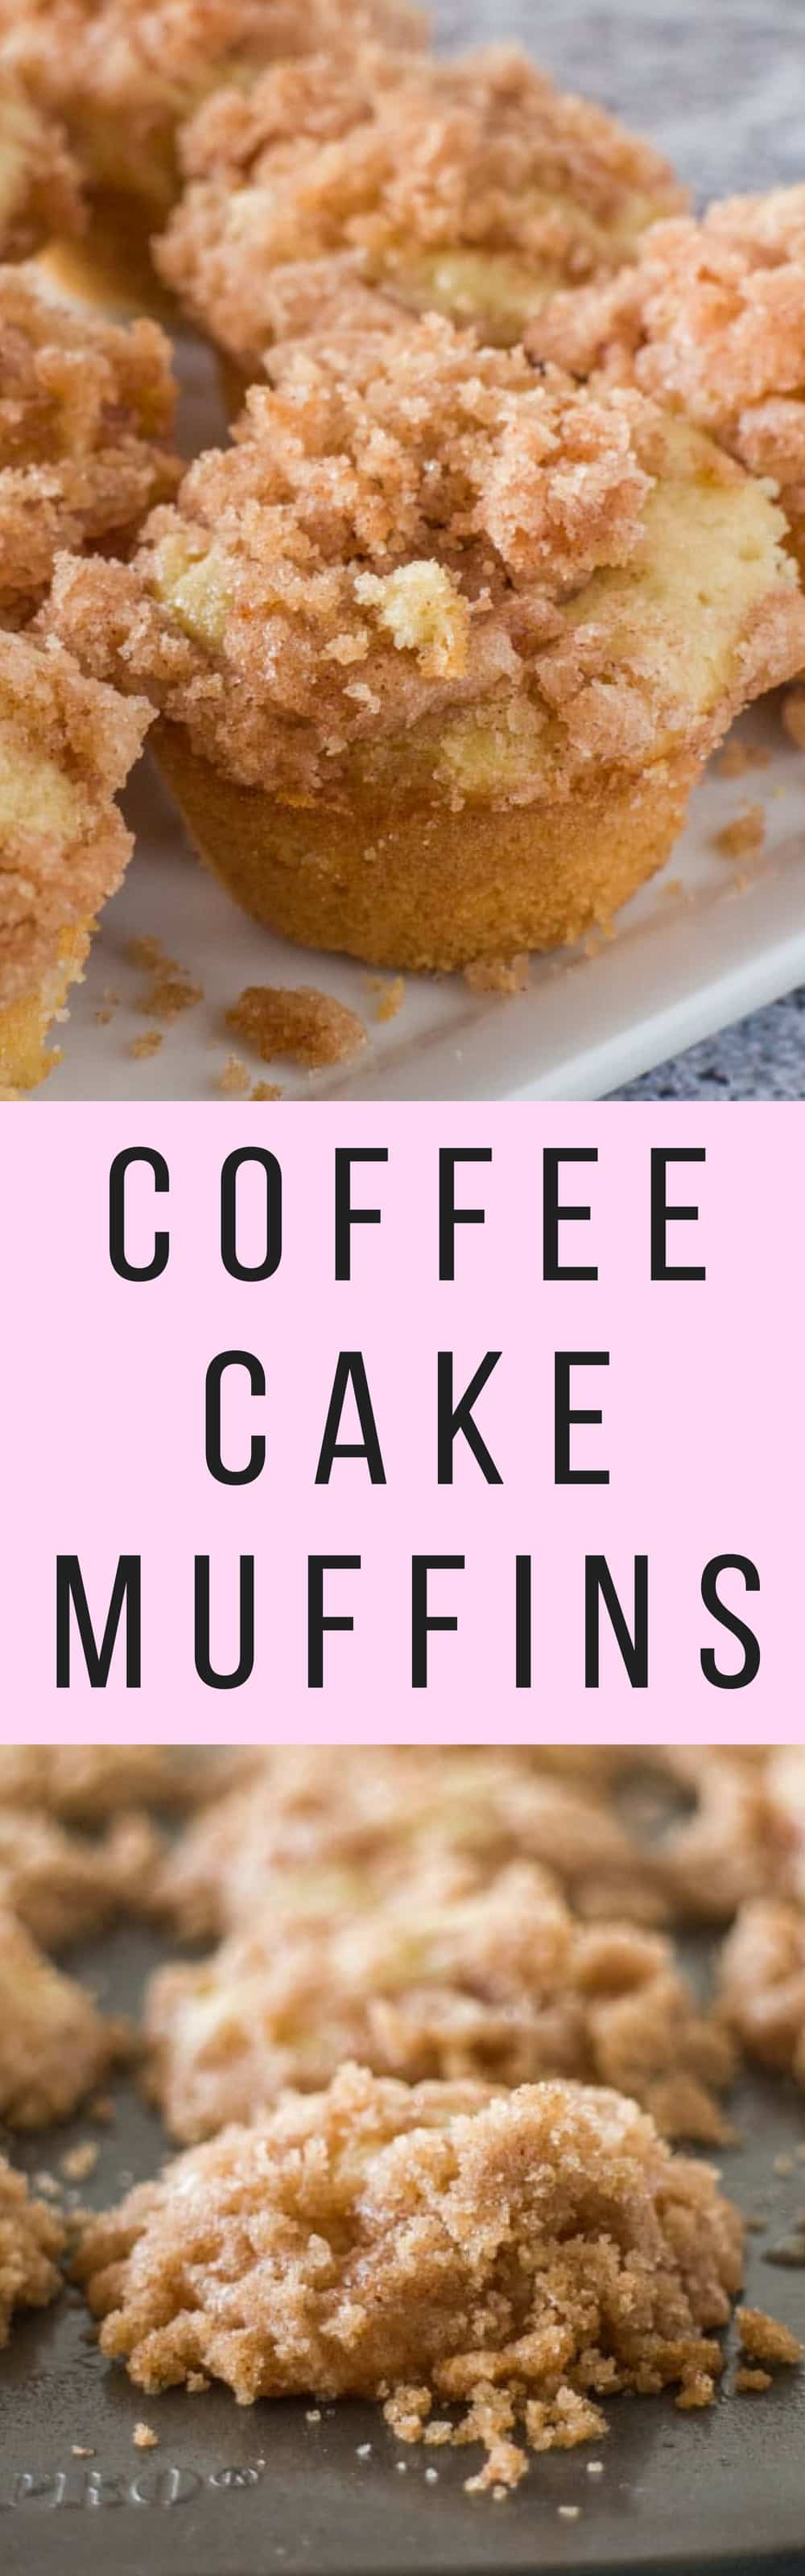 EASY RECIPE for Mini Coffee Cake Muffins that taste just like Coffee Cake!  Add a cinnamon sugar crumble on top! They are so quick to make!  My family loves them for breakfast and dessert!   Recipe makes 16 mini muffins.